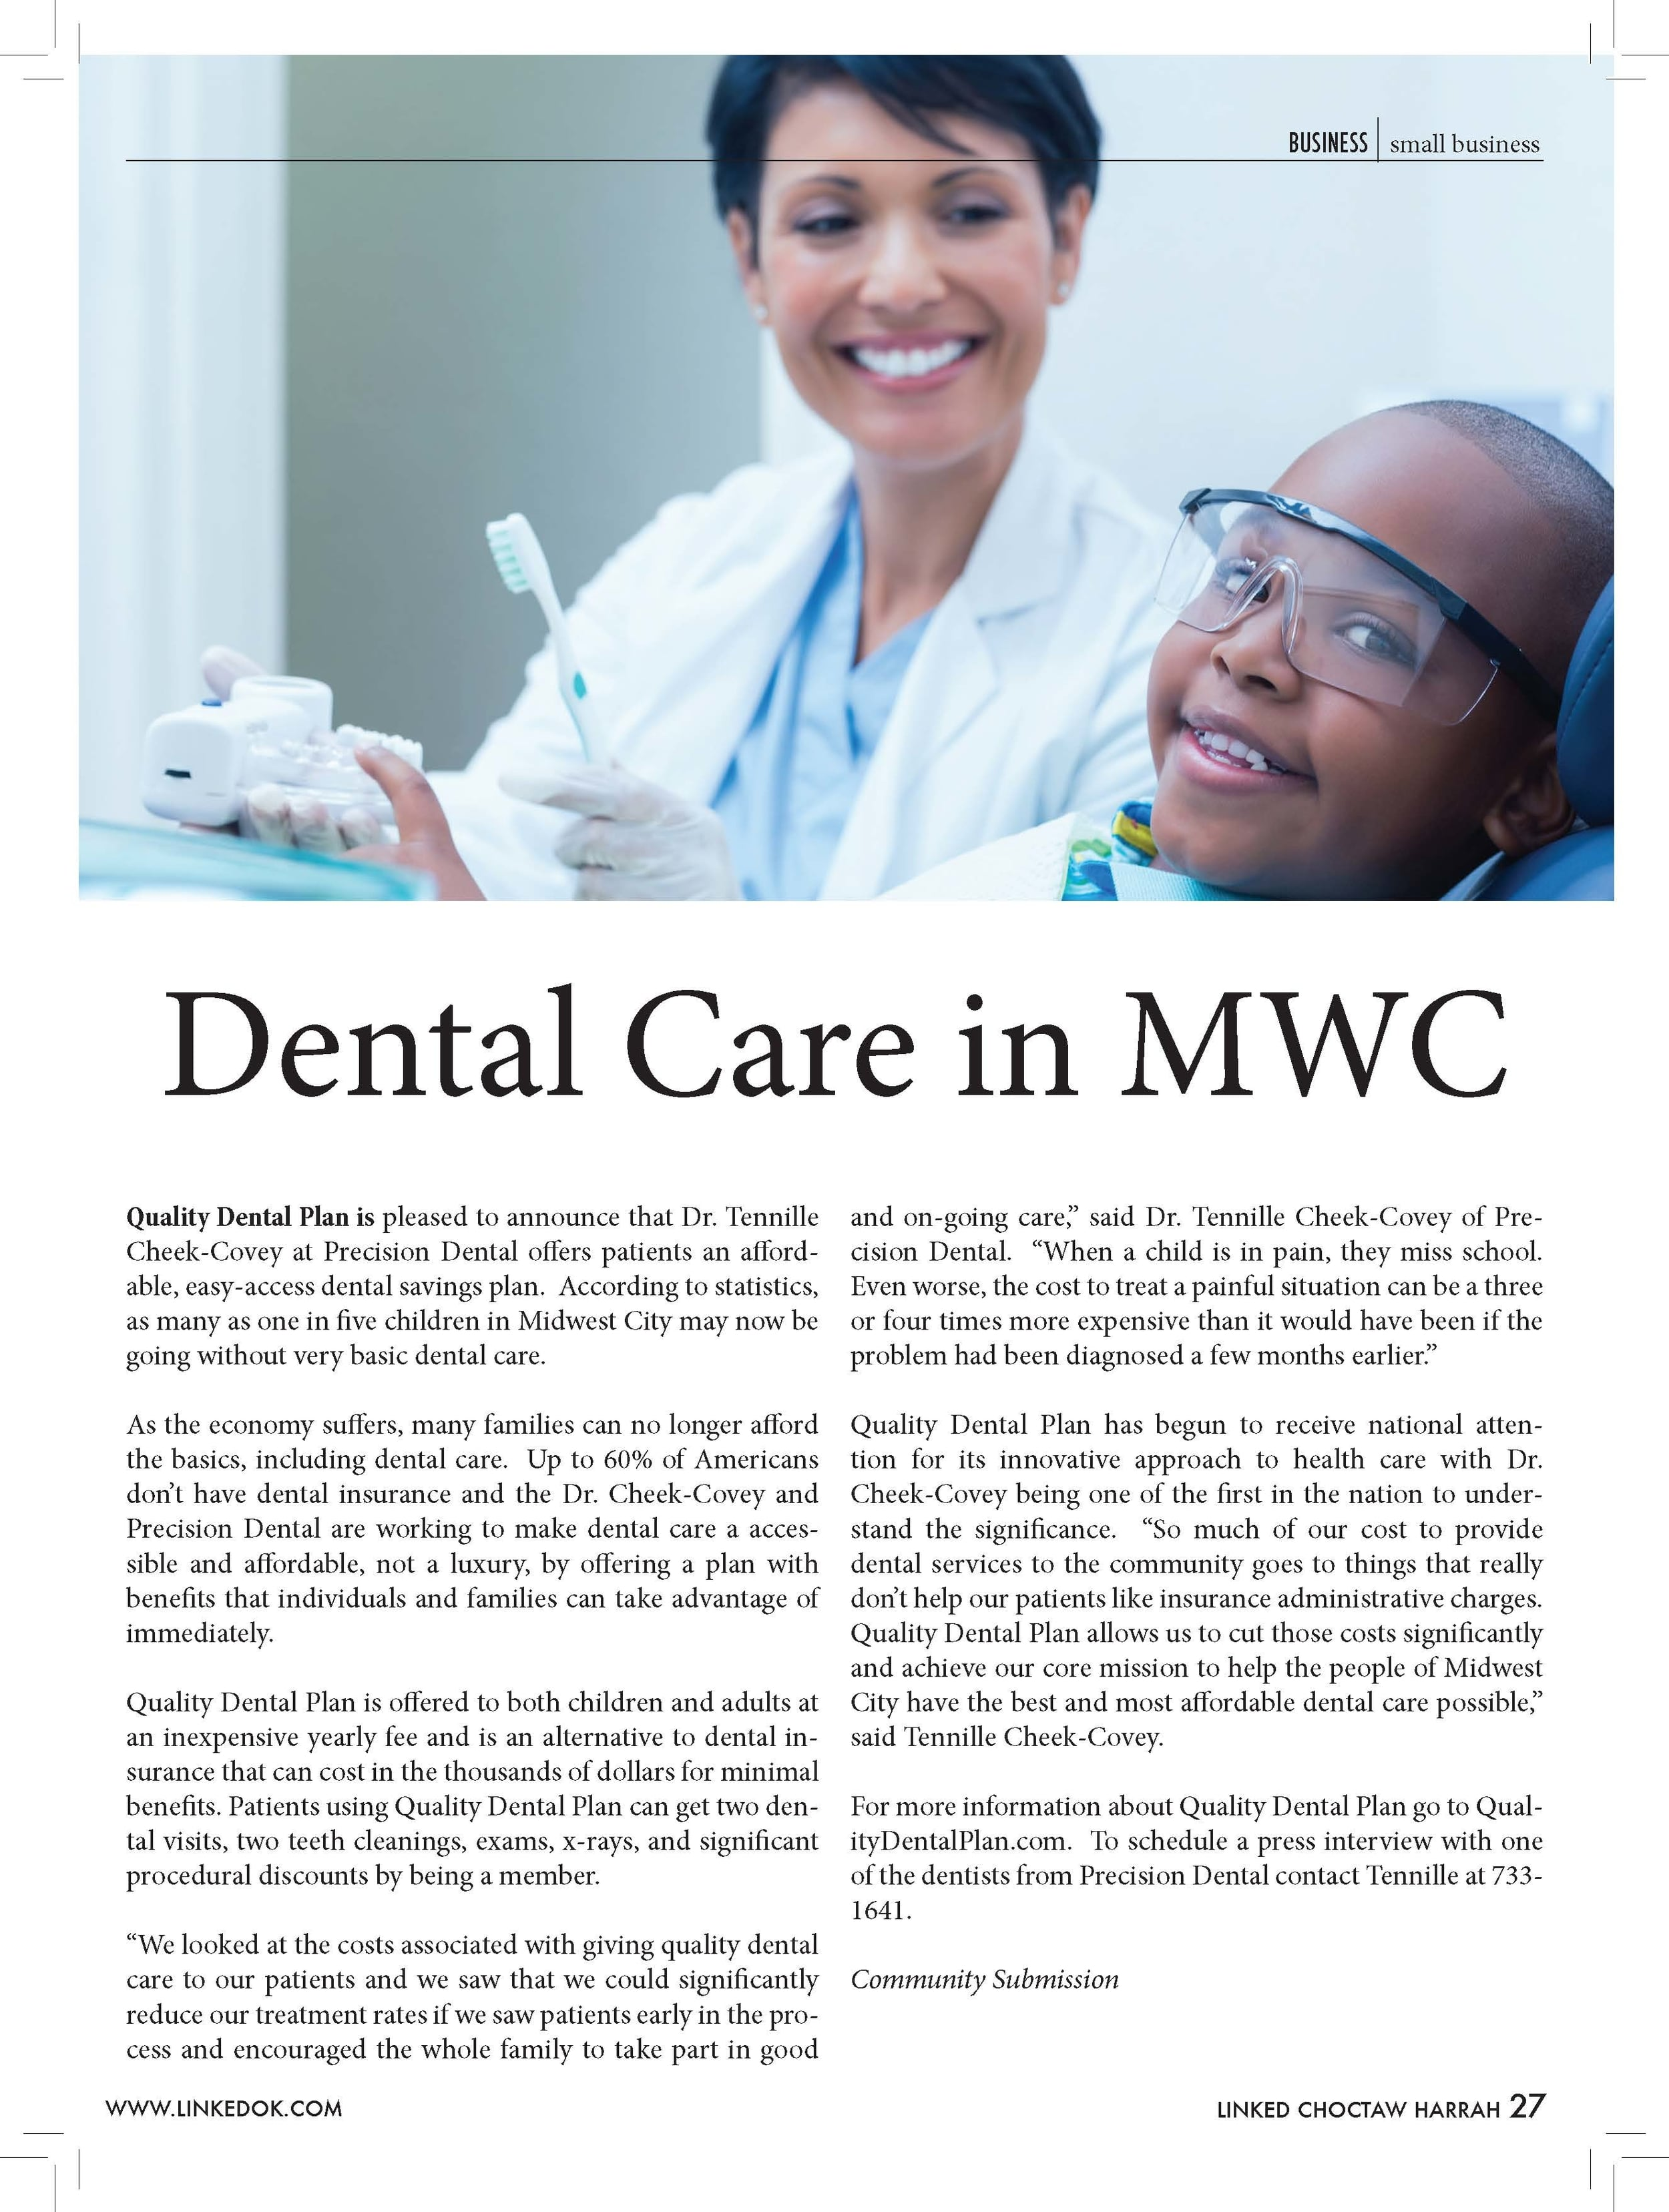 """Dental Care in MWC  Quality Dental Plan is pleased to announce that Dr. Tennille Cheek-Covey at Precision Dental offers patients an afford-able, easy-access dental savings plan. According to statistics, as many as one in five children in Midwest City may now be going without very basic dental care.  As the economy suffers, many families can no longer afford the basics, including dental care. Up to 60% of Americans don't have dental insurance and the Dr. Cheek-Covey and Precision Dental are working to make dental care a acces-sible and affordable, not a luxury, by offering a plan with benefits that individuals and families can take advantage of immediately.  Quality Dental Plan is offered to both children and adults at an inexpensive yearly fee and is an alternative to dental in-surance that can cost in the thousands of dollars for minimal benefits. Patients using Quality Dental Plan can get two den-tal visits, two teeth cleanings, exams, x-rays, and significant procedural discounts by being a member. """"We looked at the costs associated with giving quality dental care to our patients and we saw that we could significantly reduce our treatment rates if we saw patients early in the pro-cess and encouraged the whole family to take part in good and on-going care,"""" said Dr. Tennille Cheek-Covey of Pre-cision Dental. """"When a child is in pain, they miss school. Even worse, the cost to treat a painful situation can be a three or four times more expensive than it would have been if the problem had been diagnosed a few months earlier.""""  Quality Dental Plan has begun to receive national atten-tion for its innovative approach to health care with Dr. Cheek-Covey being one of the first in the nation to under-stand the significance. """"So much of our cost to provide dental services to the community goes to things that really don't help our patients like insurance administrative charges. Quality Dental Plan allows us to cut those costs significantly and achieve our core mission to help"""